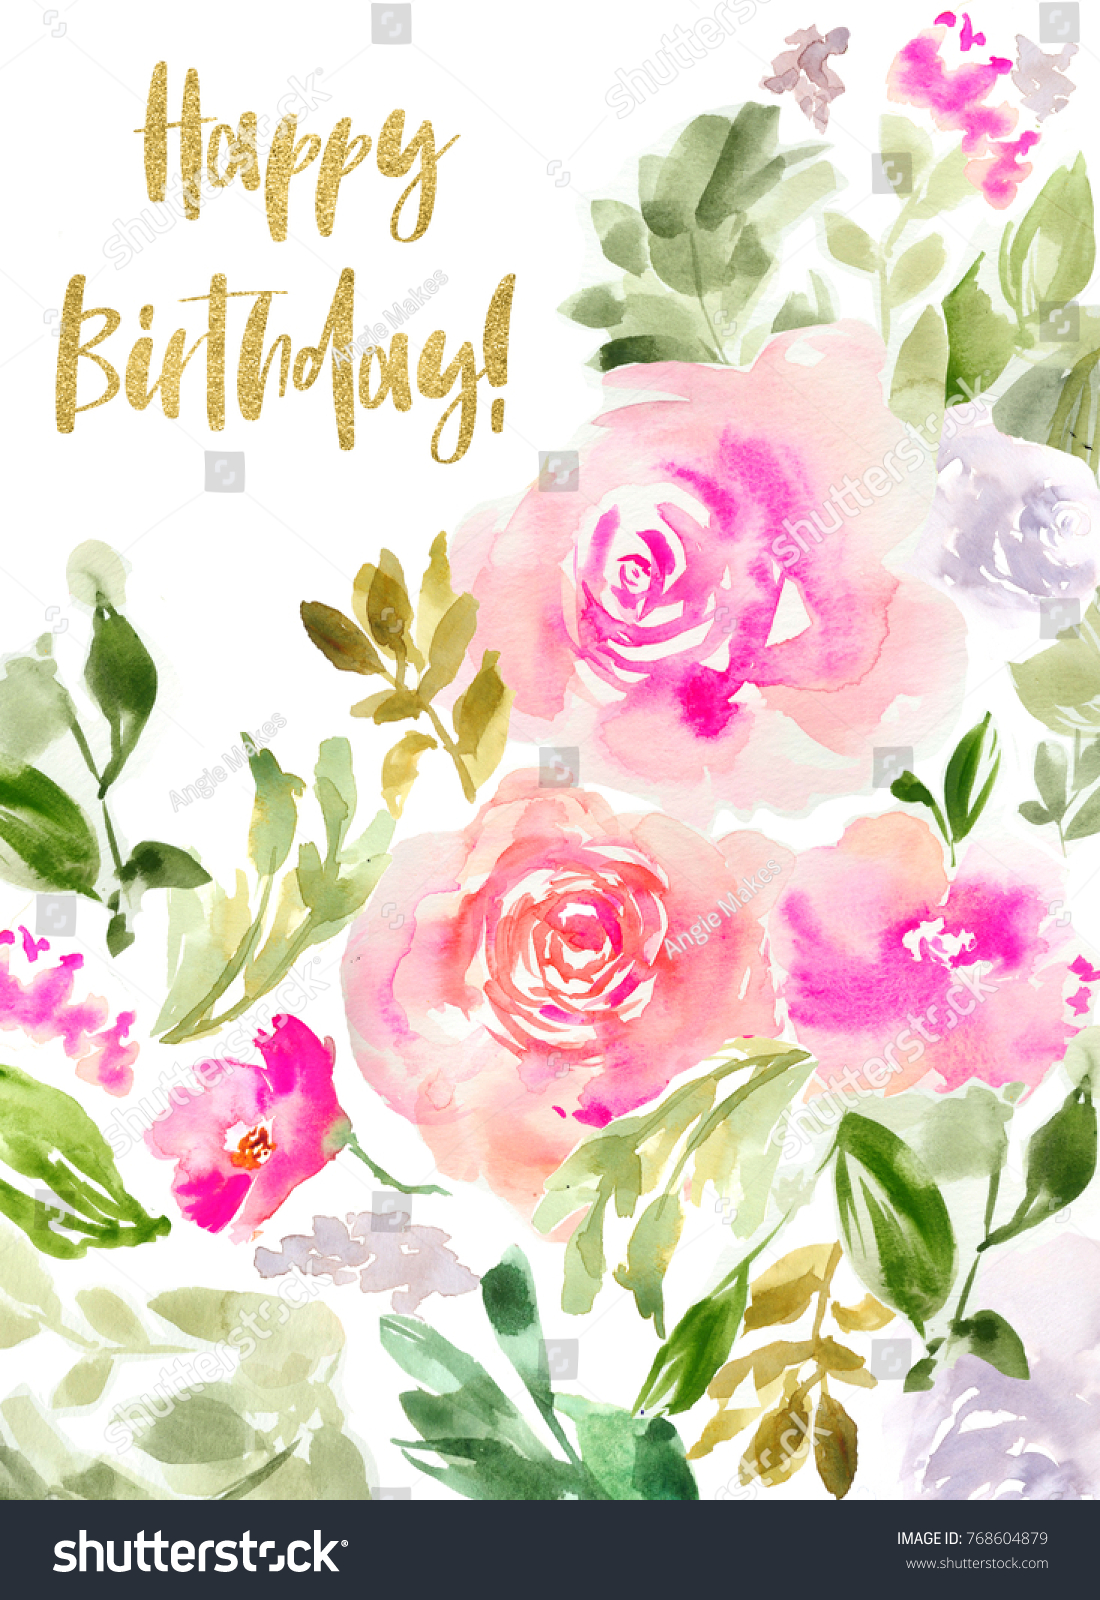 Cute Printable Watercolor Flowers Birthday Card Stock Illustration